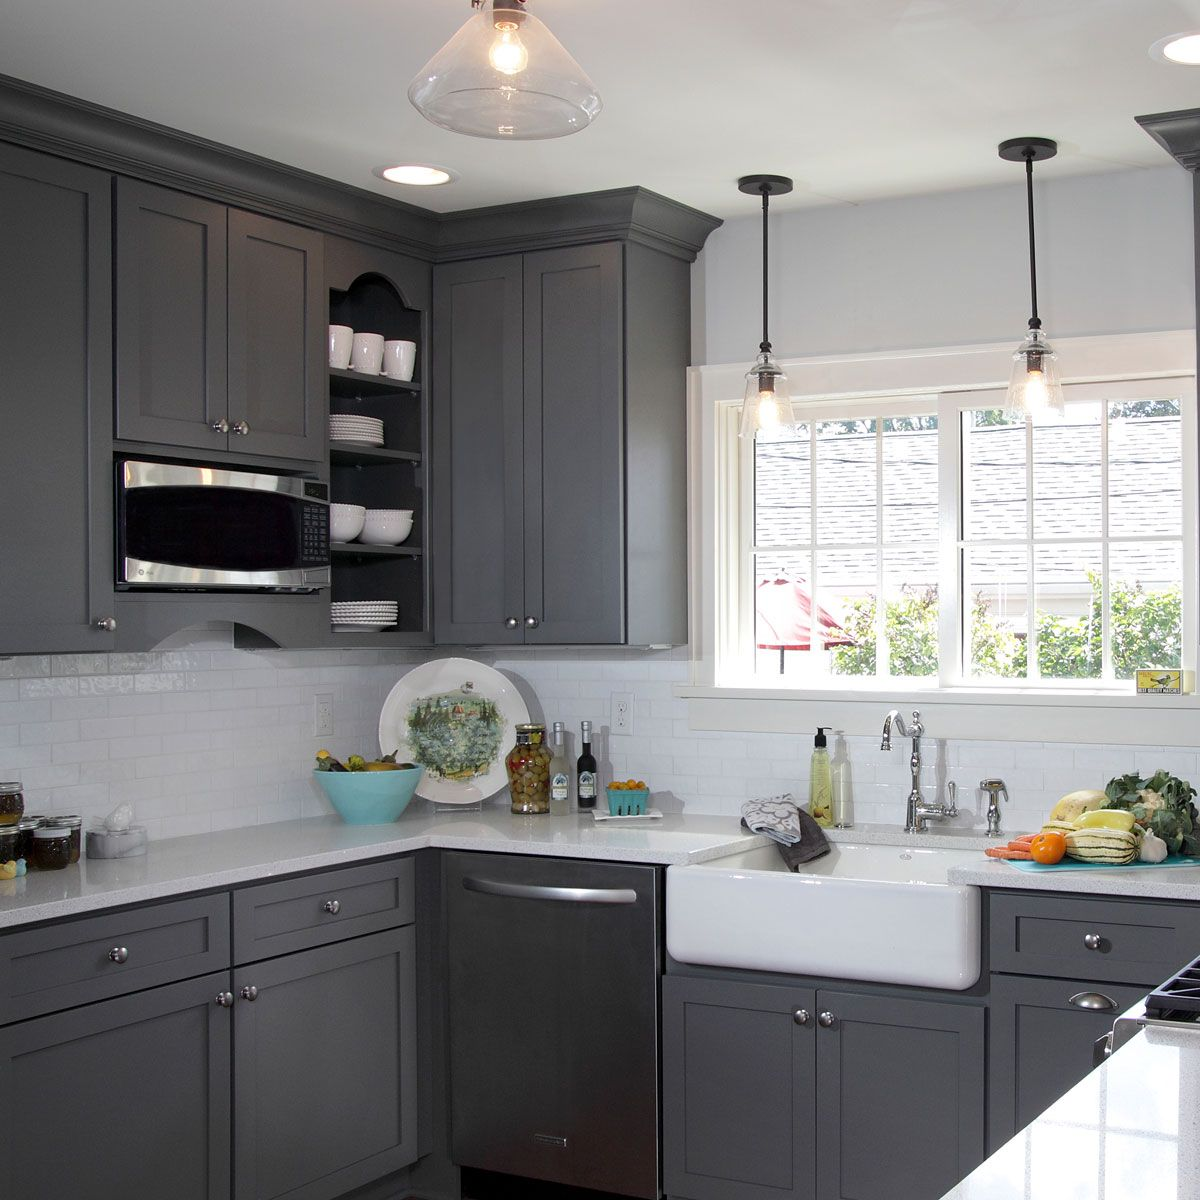 Kitchens With Black Cabinets And Gray Walls